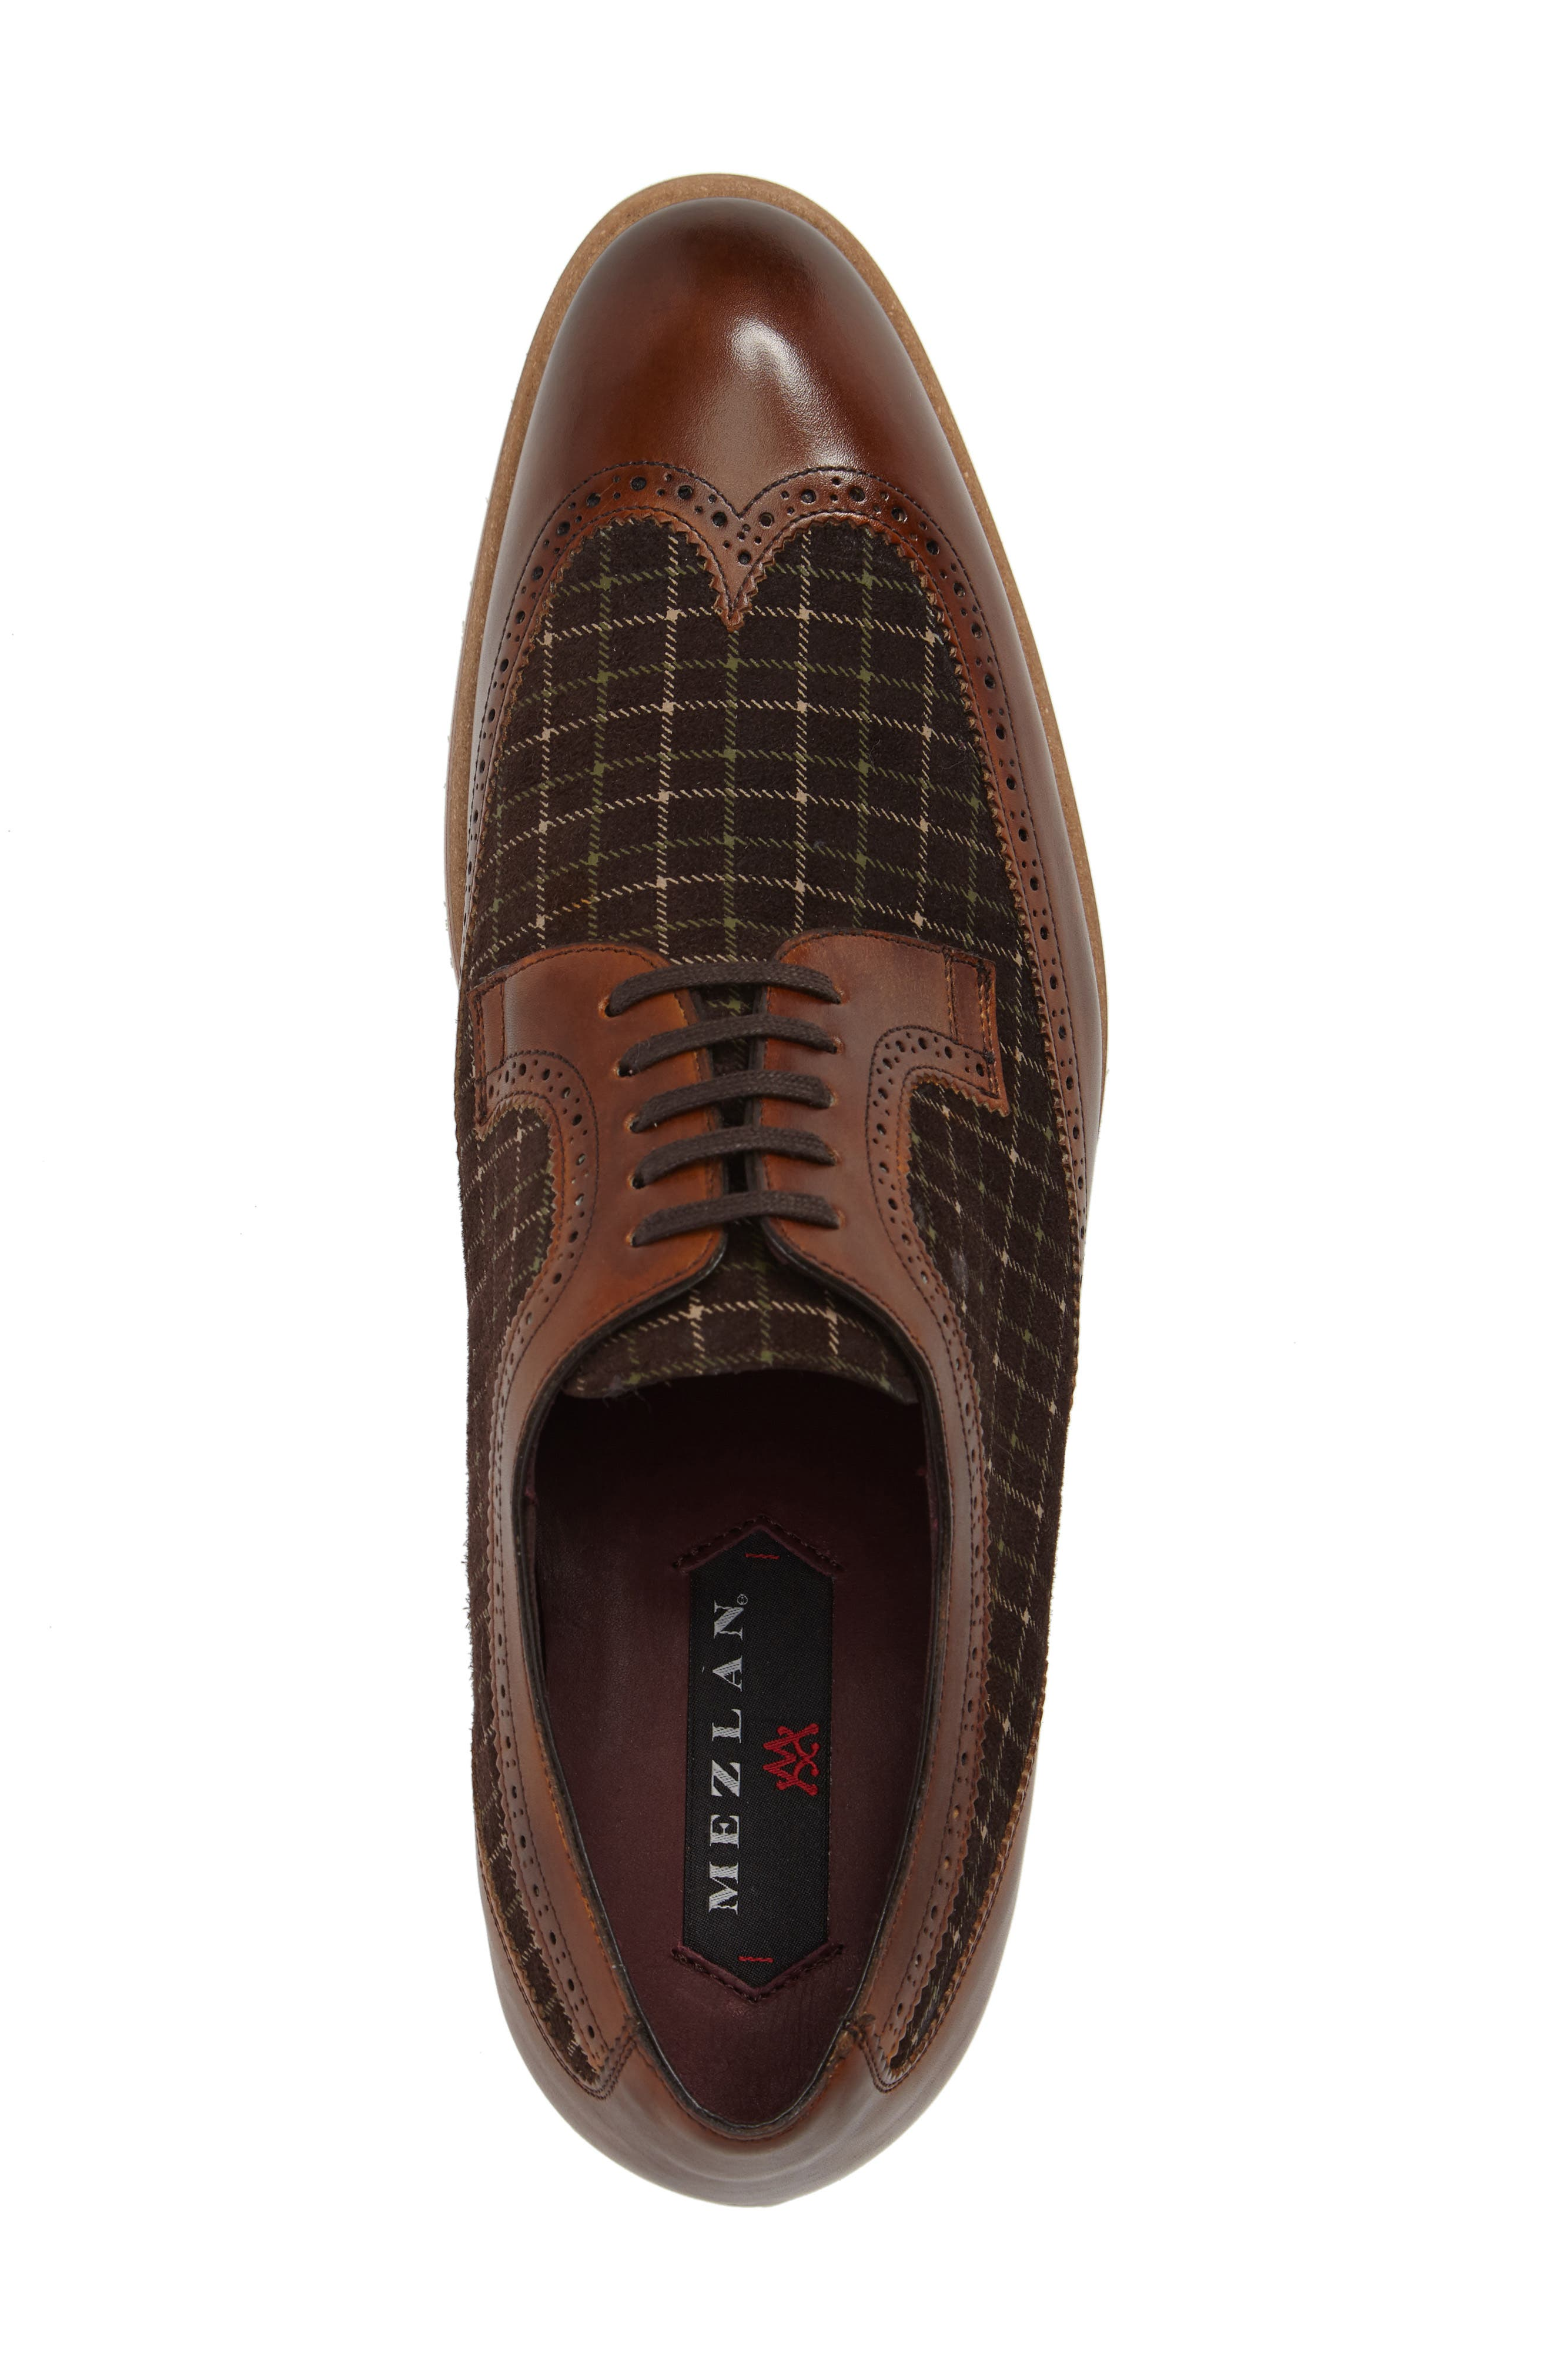 Paulov Tattersall Wingtip,                             Alternate thumbnail 5, color,                             Cognac/ Brown Leather